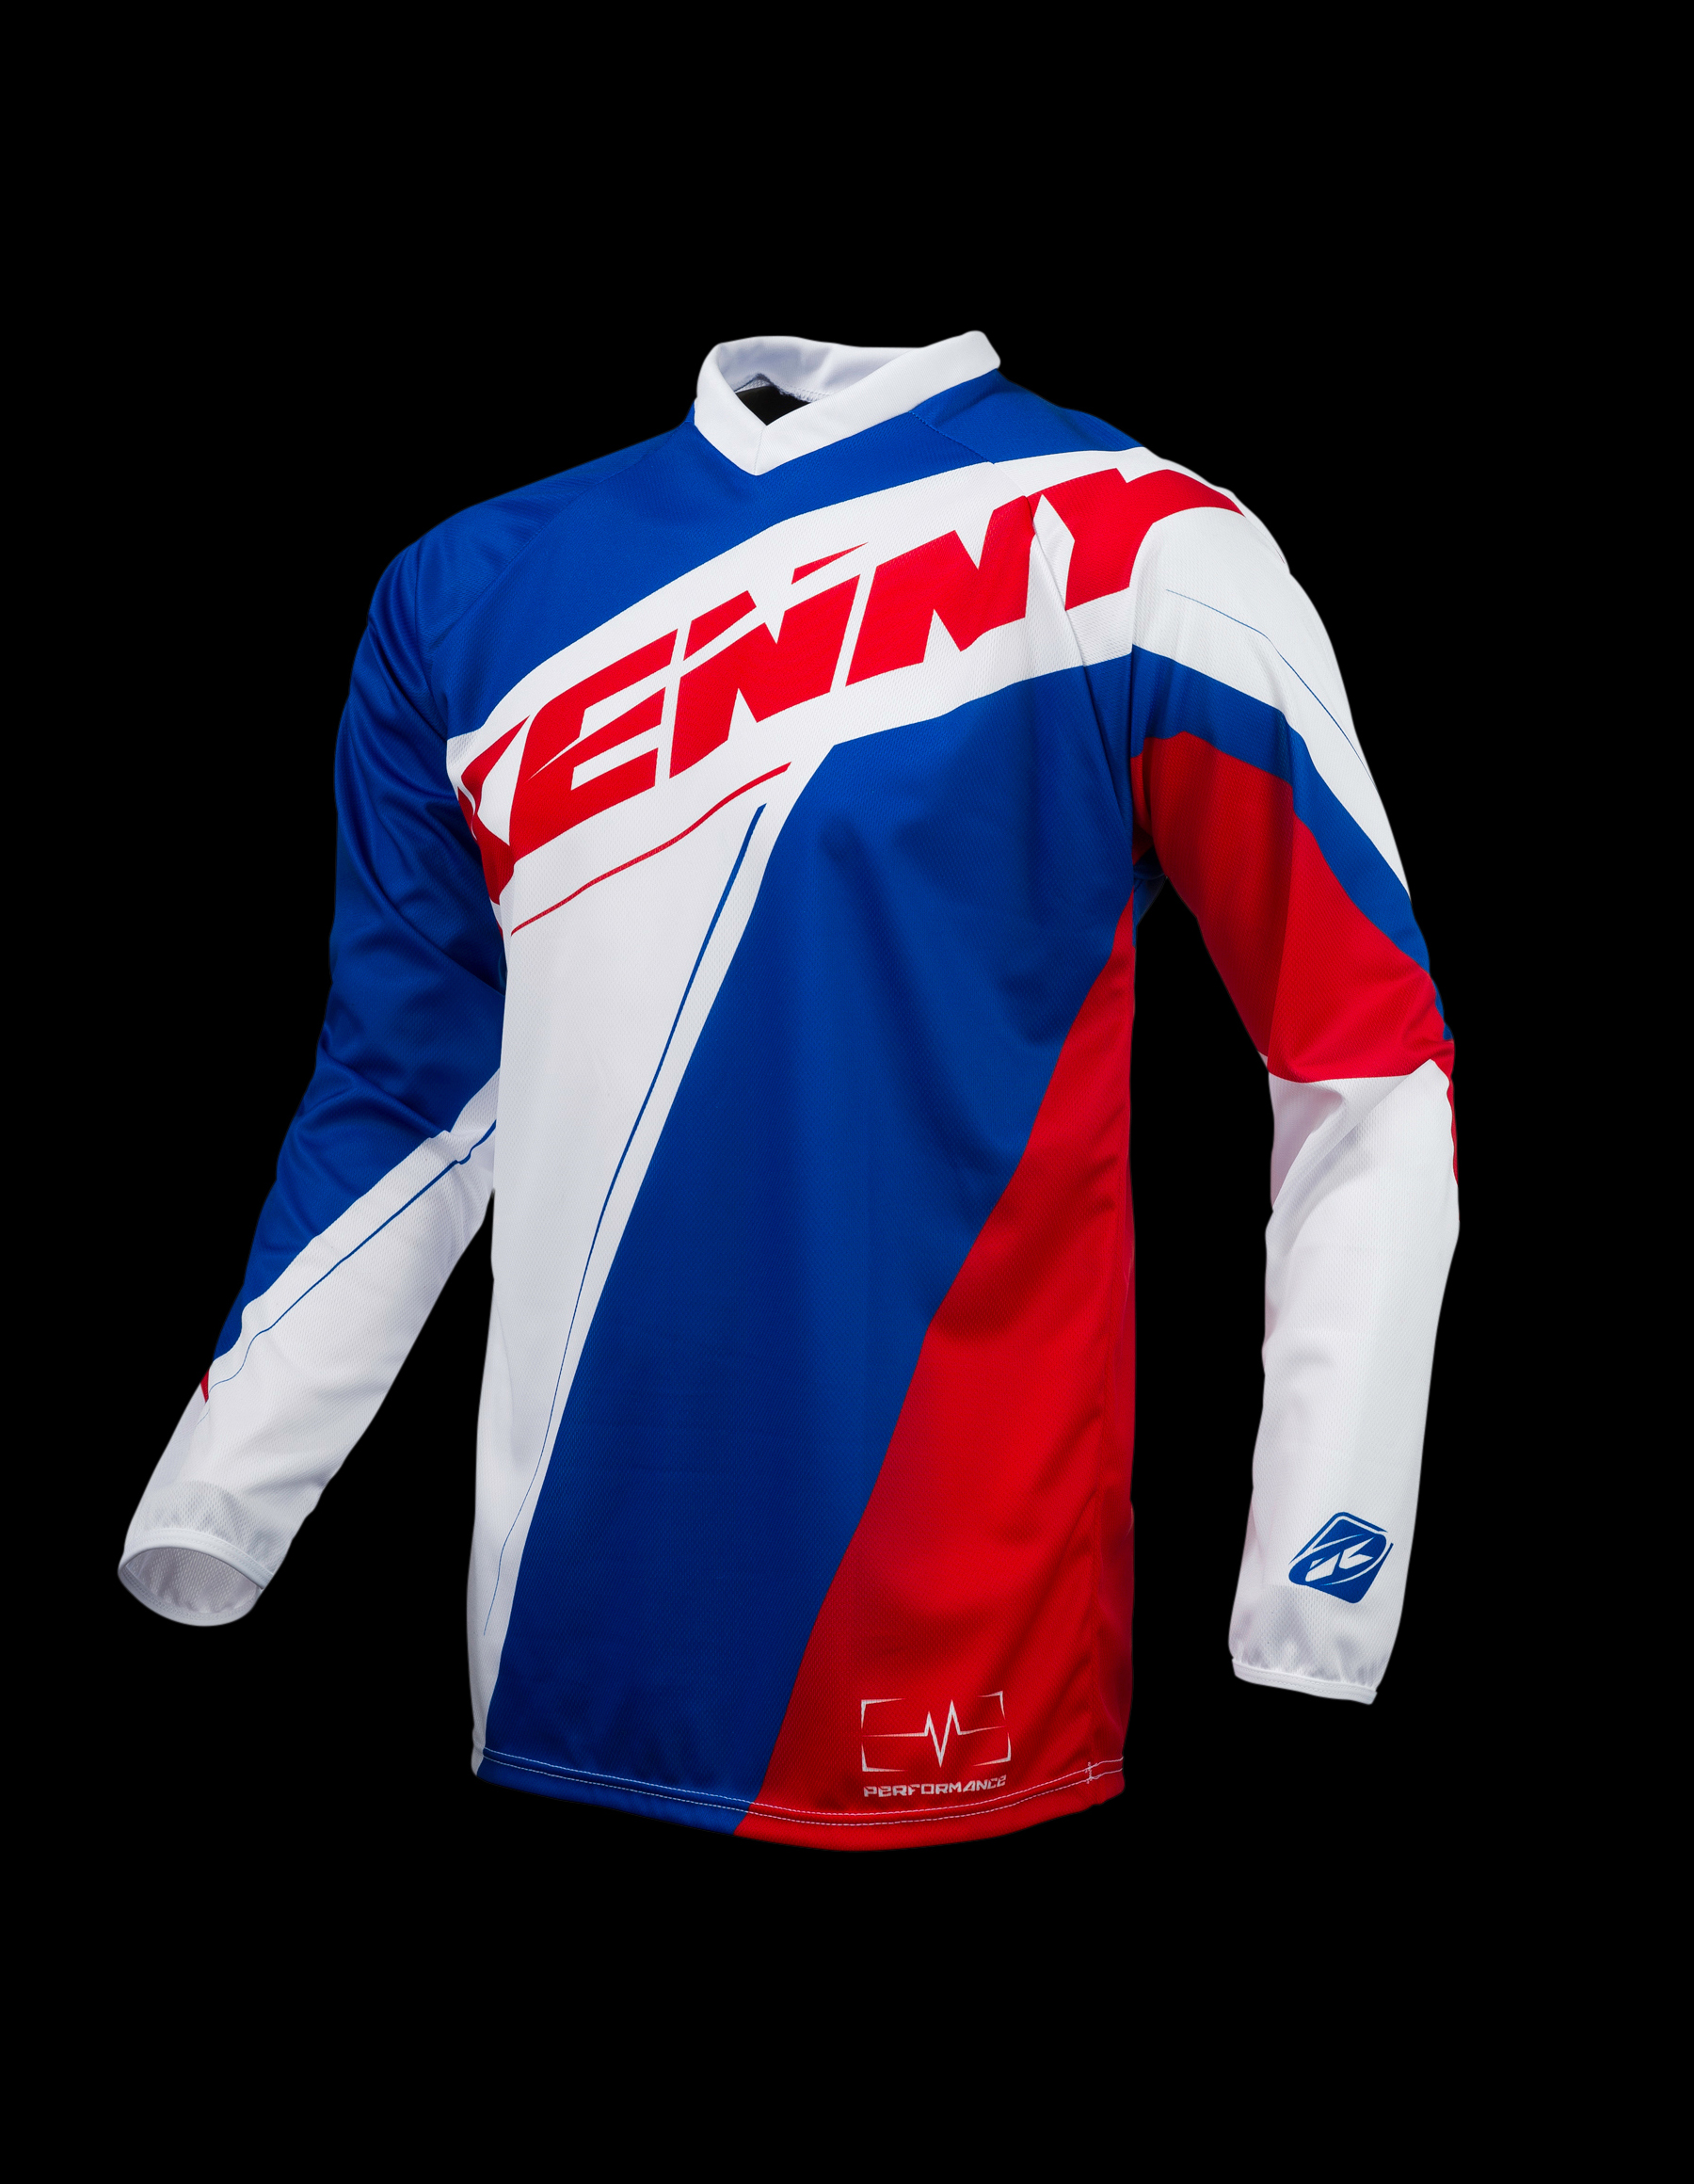 KENNY dres PERFORMANCE 2016 blue/white/red